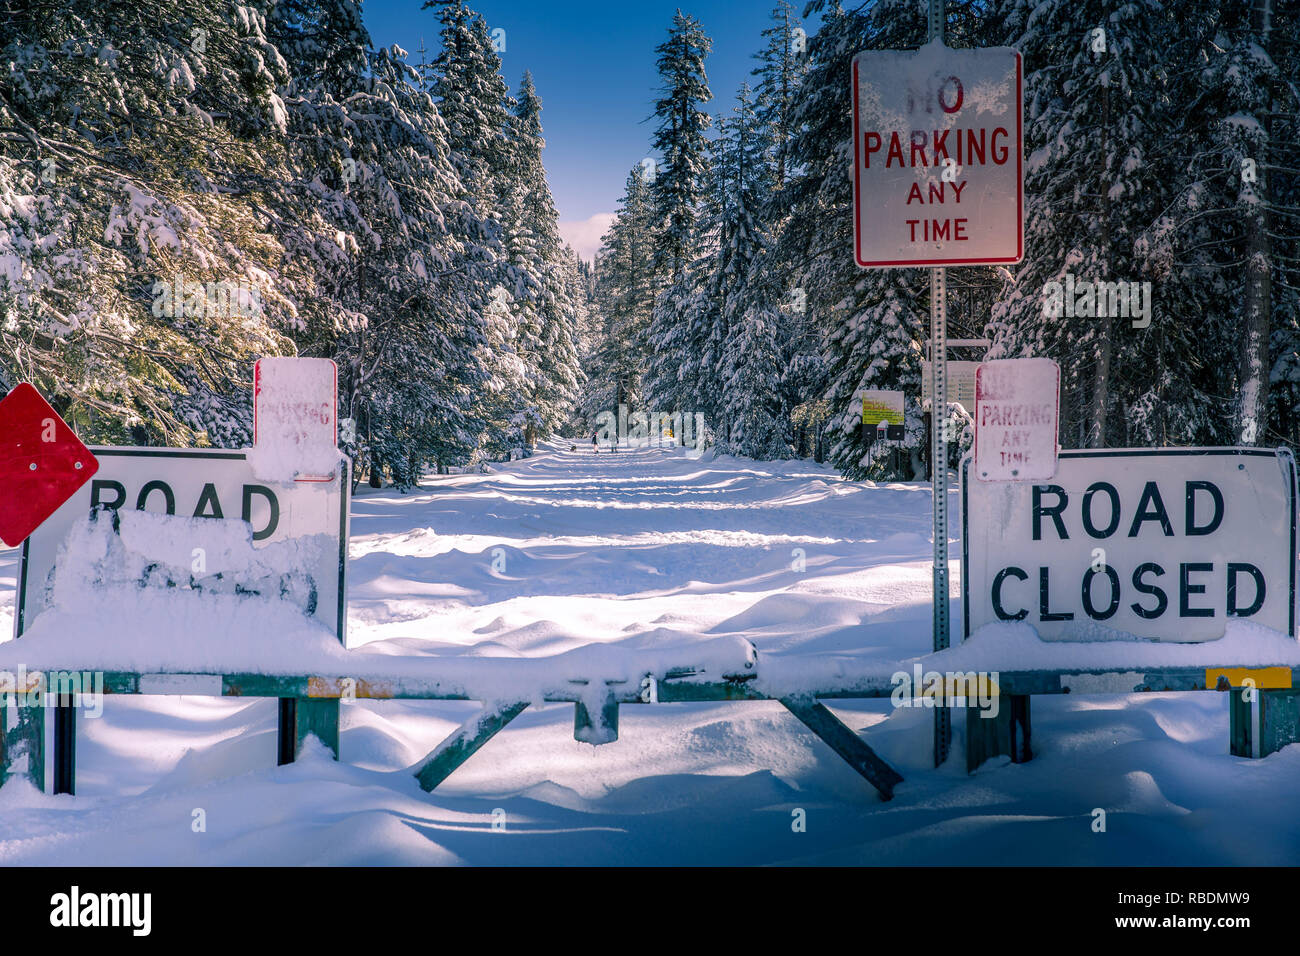 Road closed sign in snowy road in a winter forest. Icy country road in snowy forest in winter. Winter landscape with snowy road - Stock Image